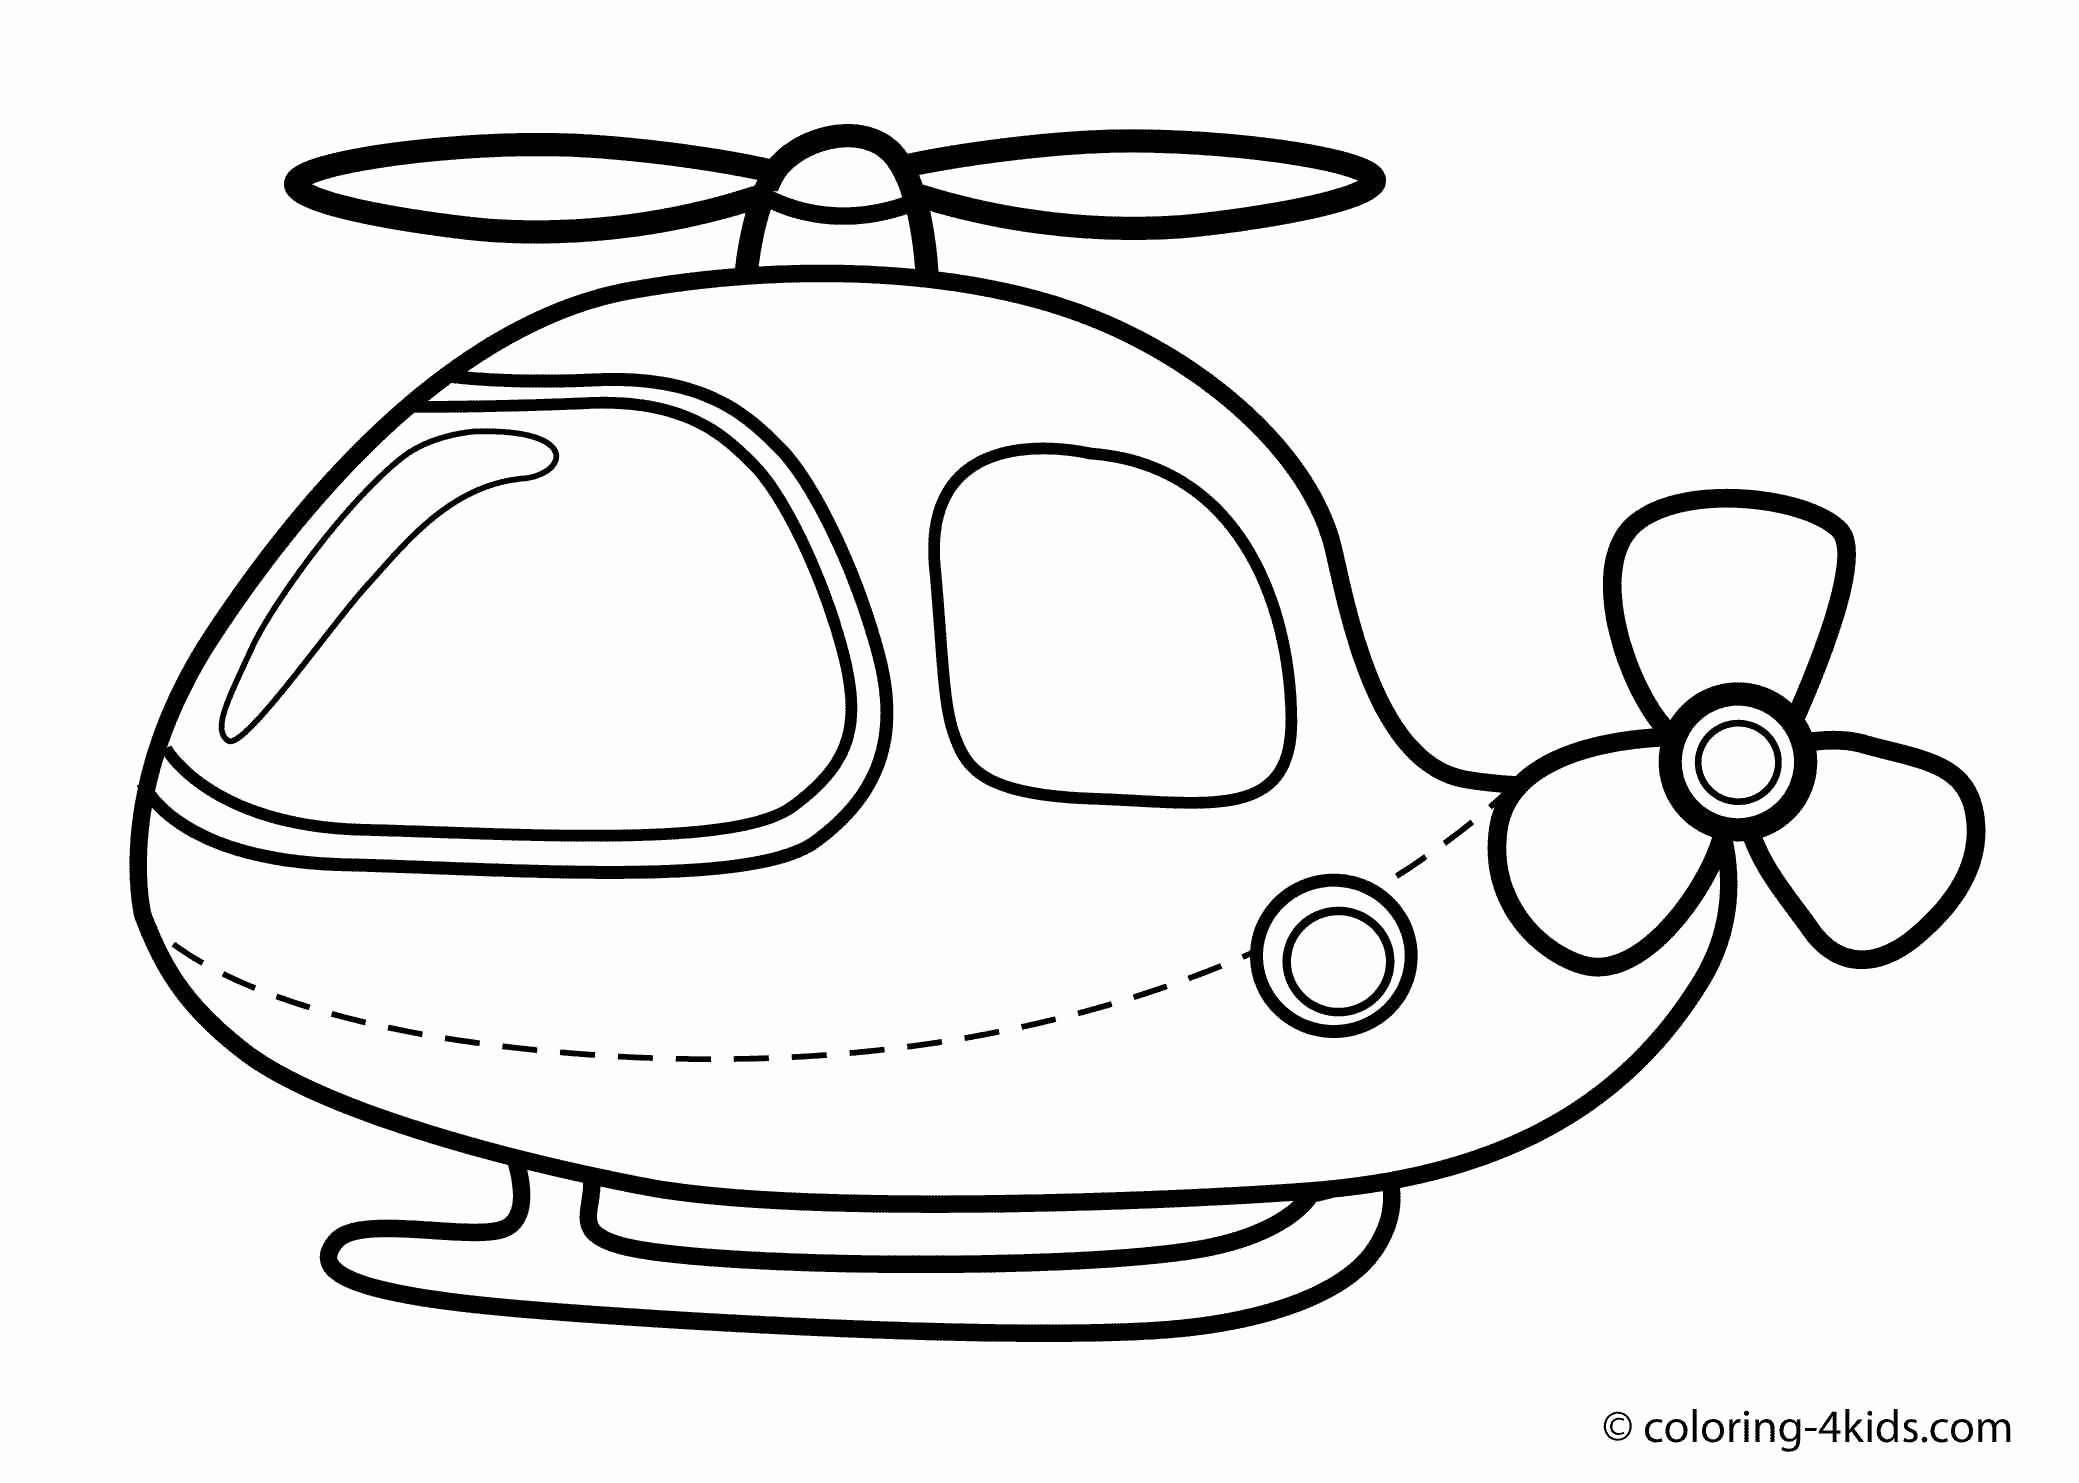 Military Dog Coloring Pages Luxury Helicopters Coloring Pages